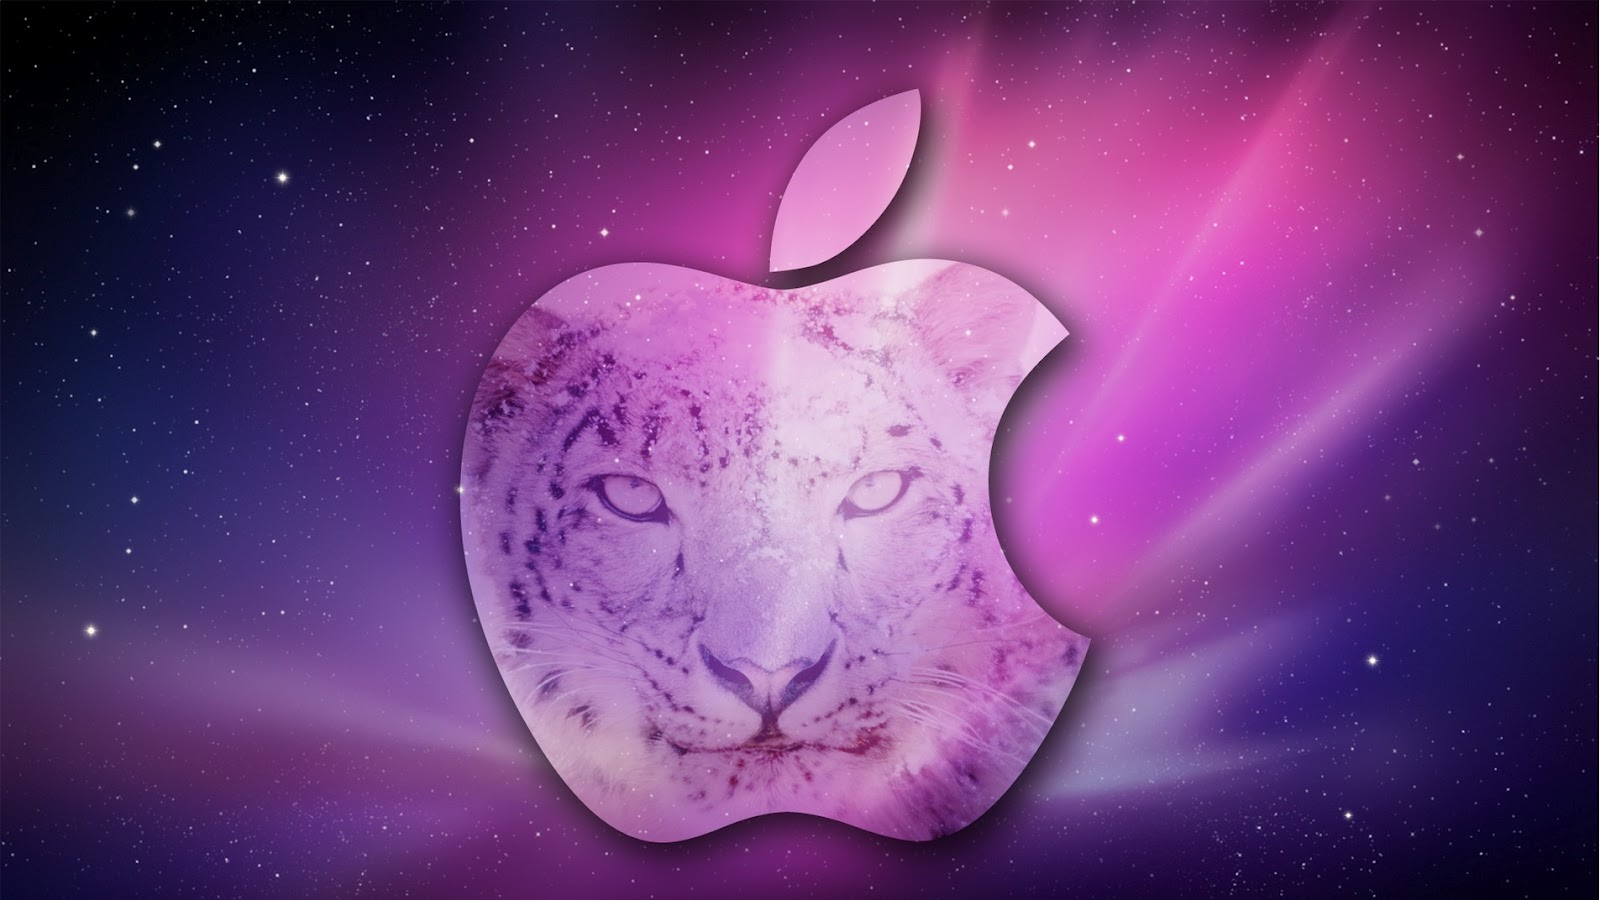 Apple Wallpapers HD